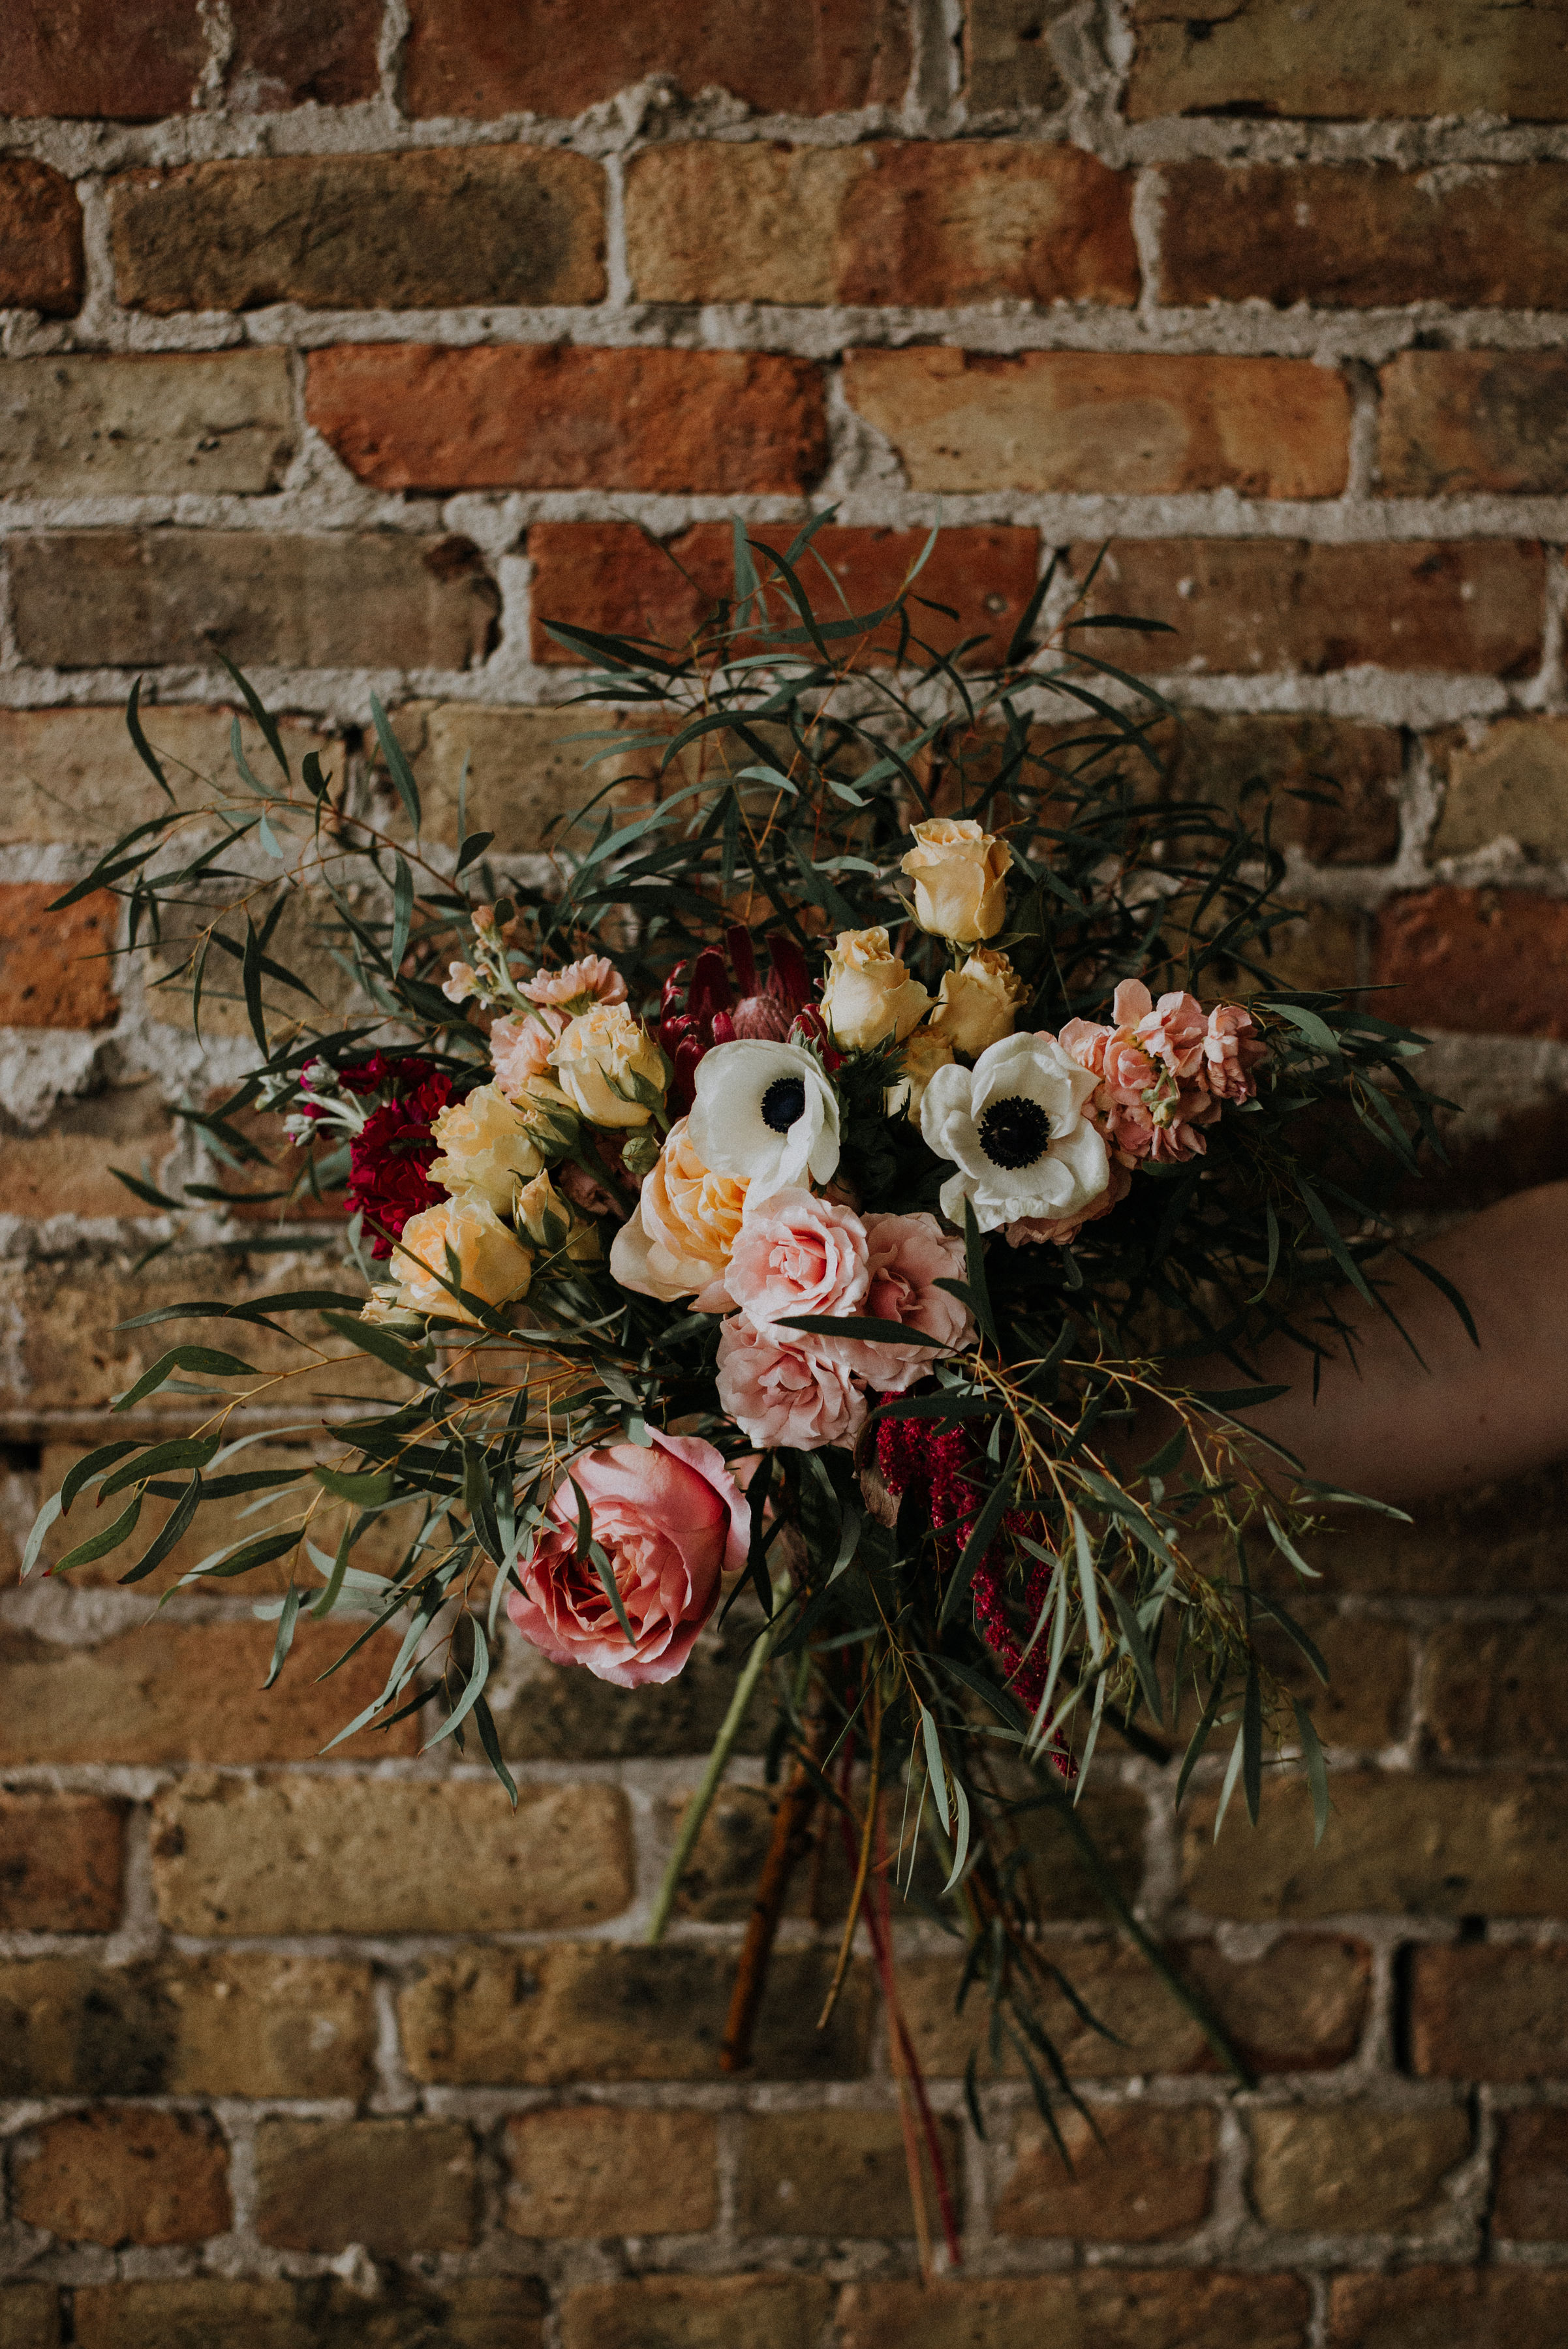 One to One - Mary is devoted to crafting unique and effortless floral arrangements and she wants to share her knowledge and expertise with both budding florists who want to learn the basics and seasoned veterans looking to adapt.One to one classes are geared towards professional florists and designed around your needs; this can include: bridal bouquet design, centerpiece design, large installations, archways, garlands, boutonnieres, color theory, sustainable business practices, and whatever else you are dying to know!Spend a day with Mary in her studio learning mechanics and asking all your burning questions. One to Ones are priced at $500.00+tax for 4 hours and include lunch, flowers for you to take home, all the tools necessary.Students can choose to add on a half hour session with a professional photographer for $300.00+ tax. They will receive 20-50 images including: head shots and images of the work they've done with Mary.Send Mary an e-mail here to set up your one to one.